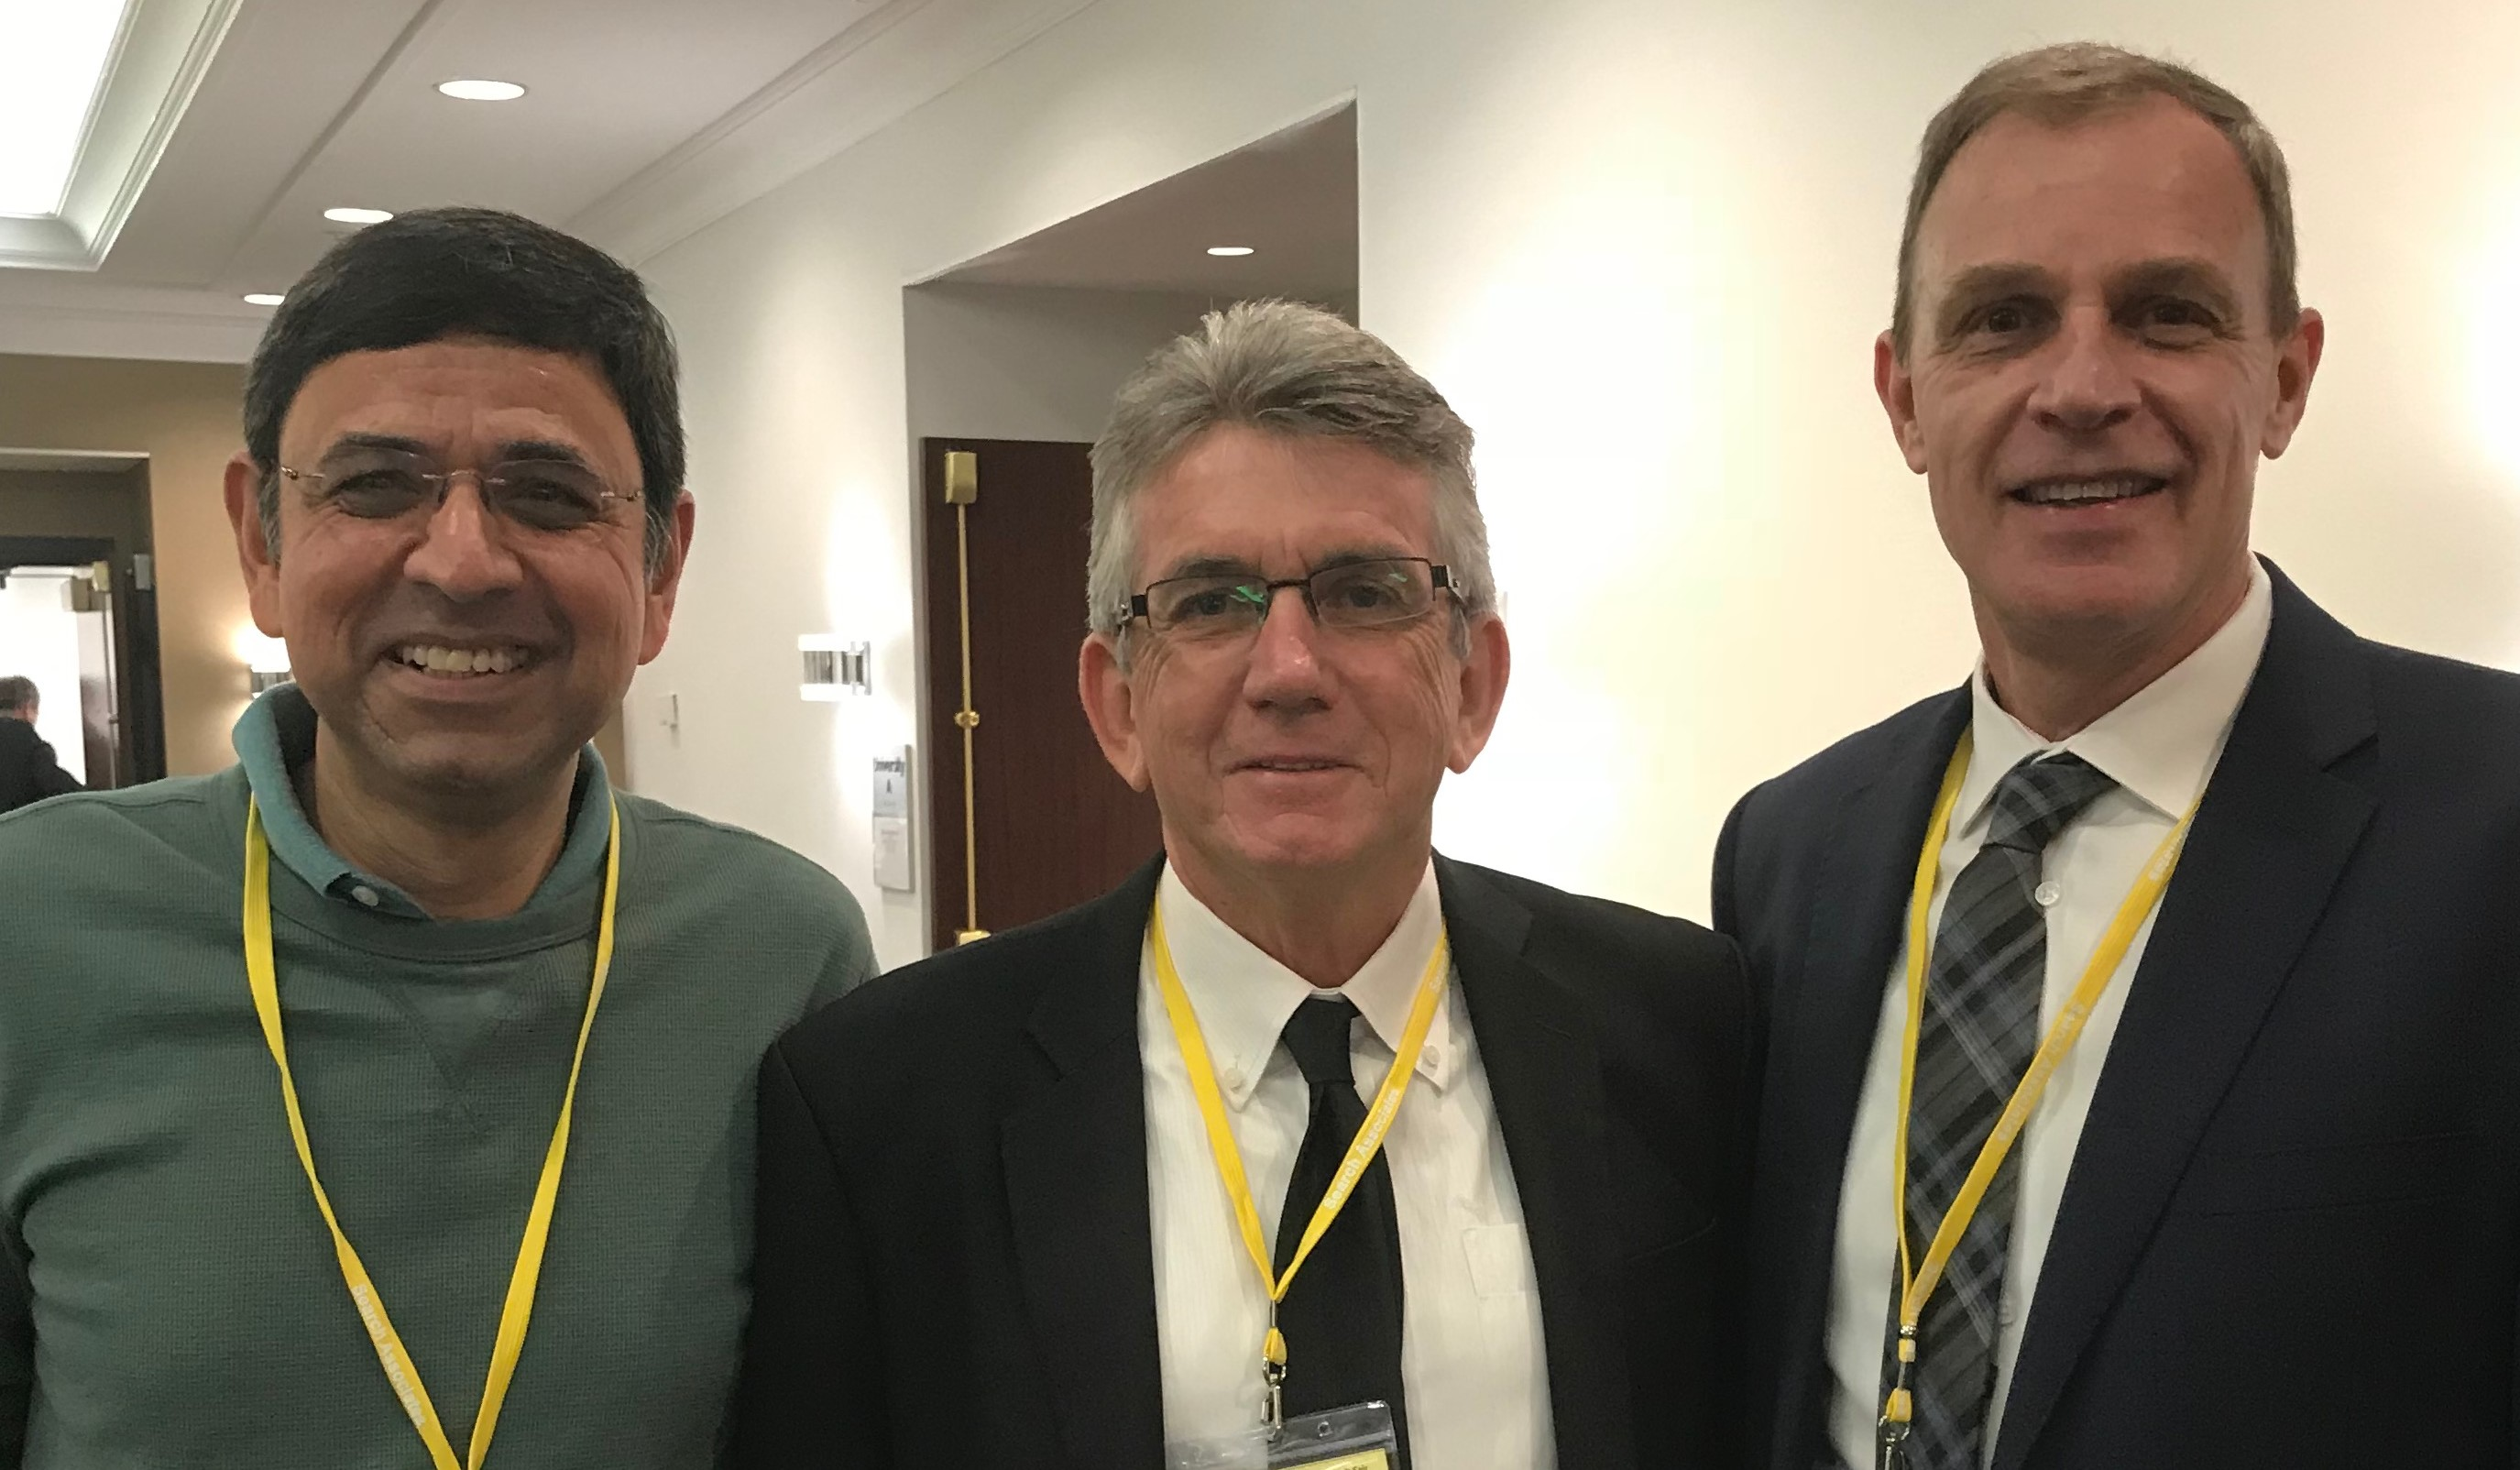 (L to R): COO Rajiv Bhat with Senior Associates Ray Sparks and Gary MacPhie